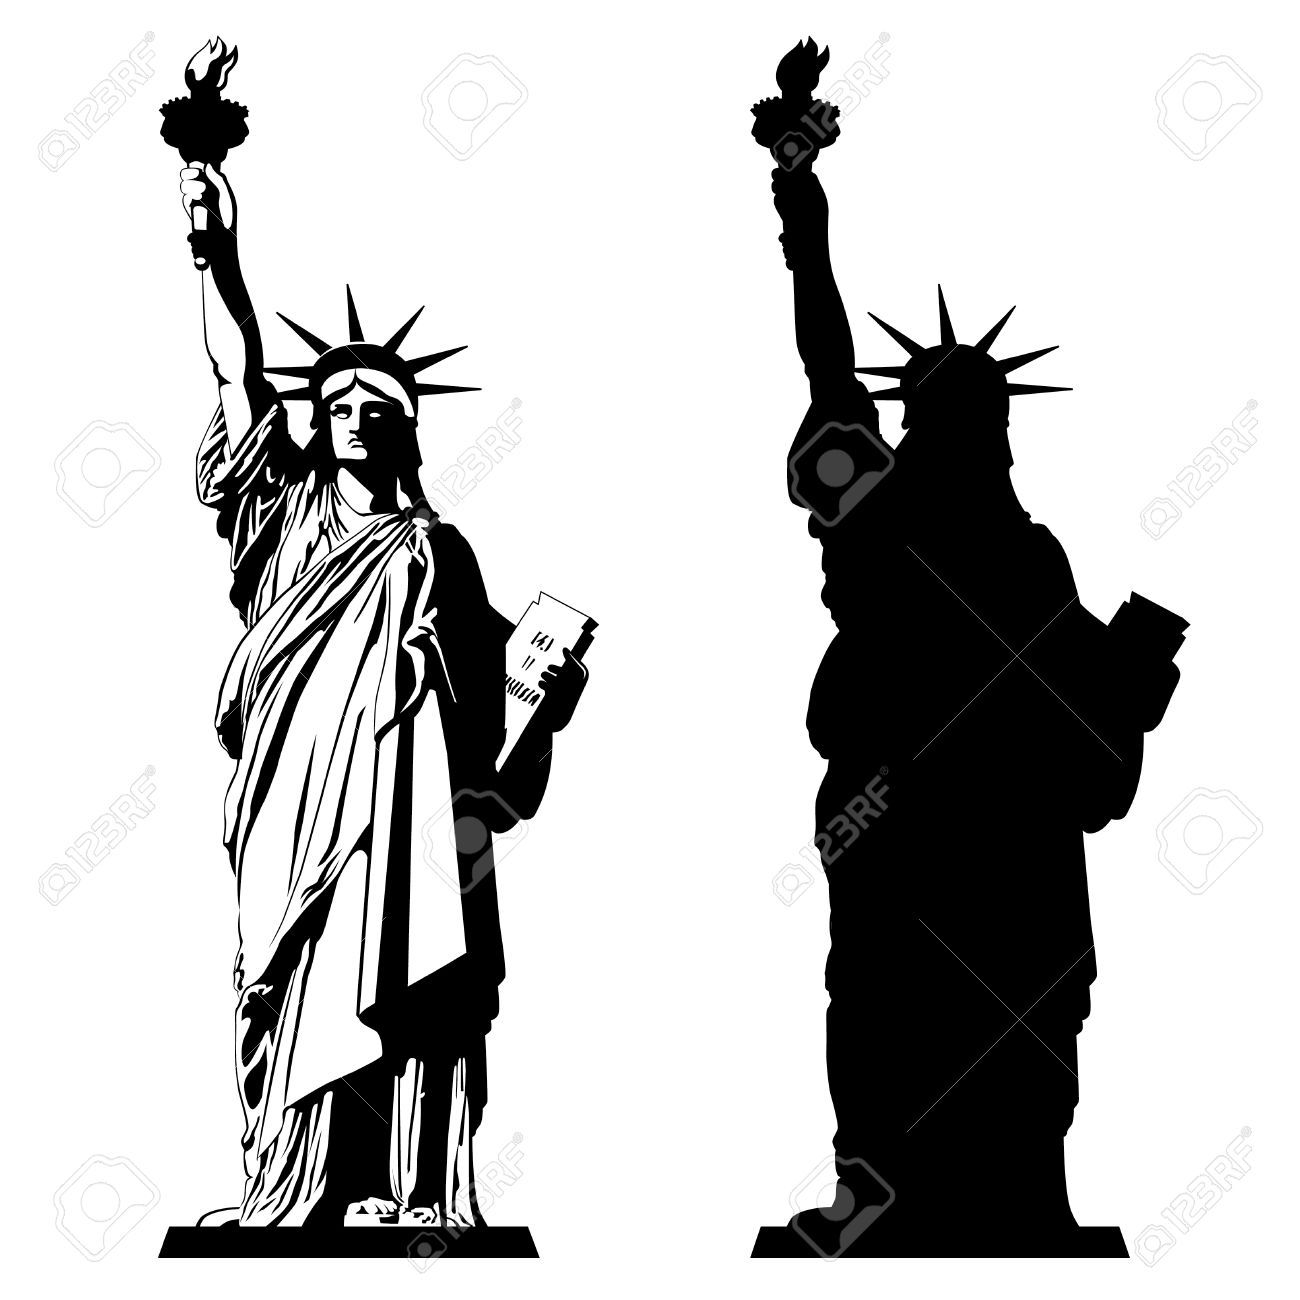 Statue of liberty clipart black and white 1 » Clipart Portal.